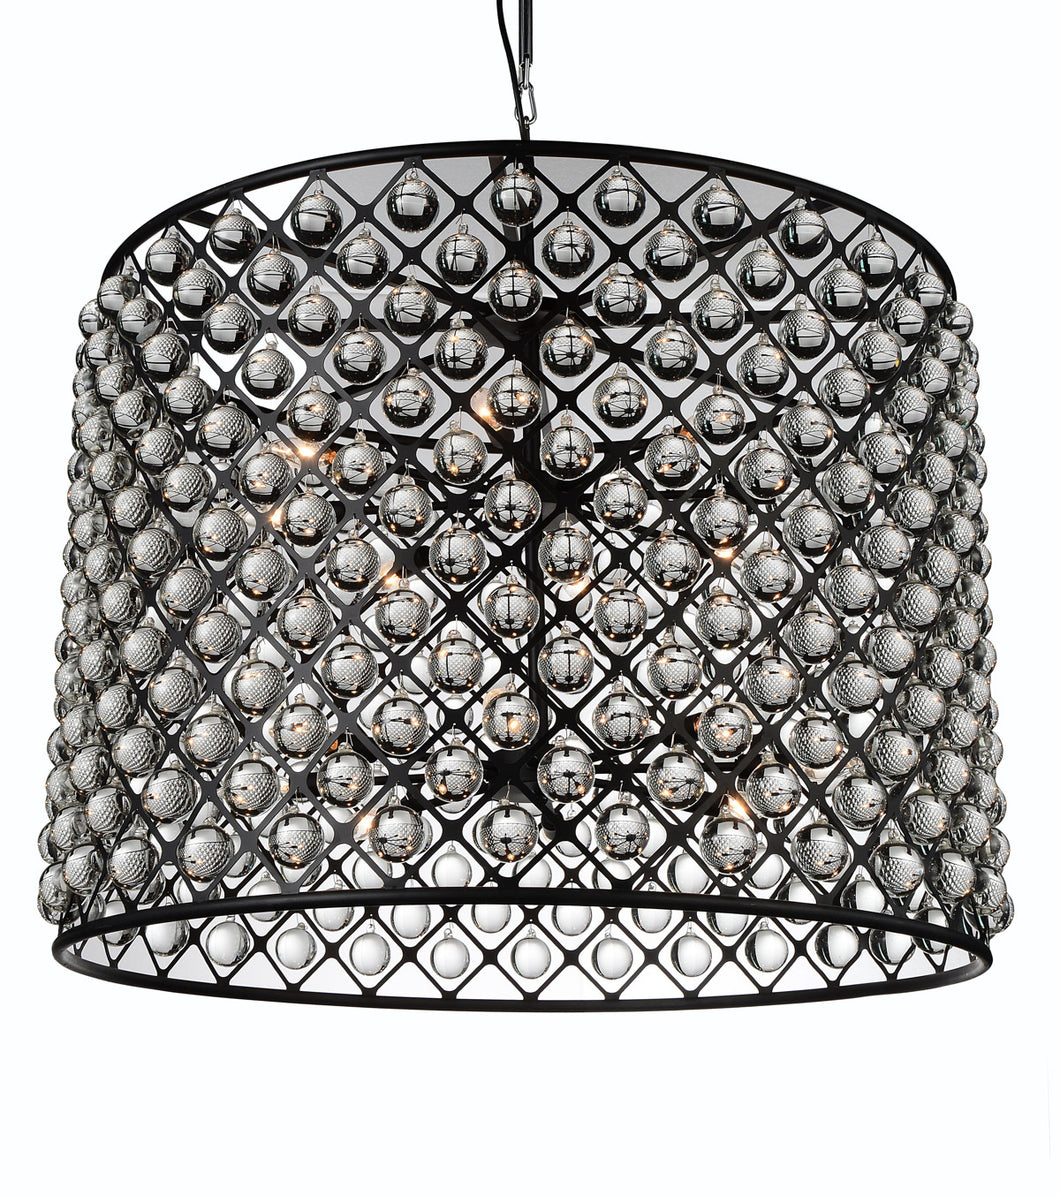 16 Light  Chandelier with Black finish